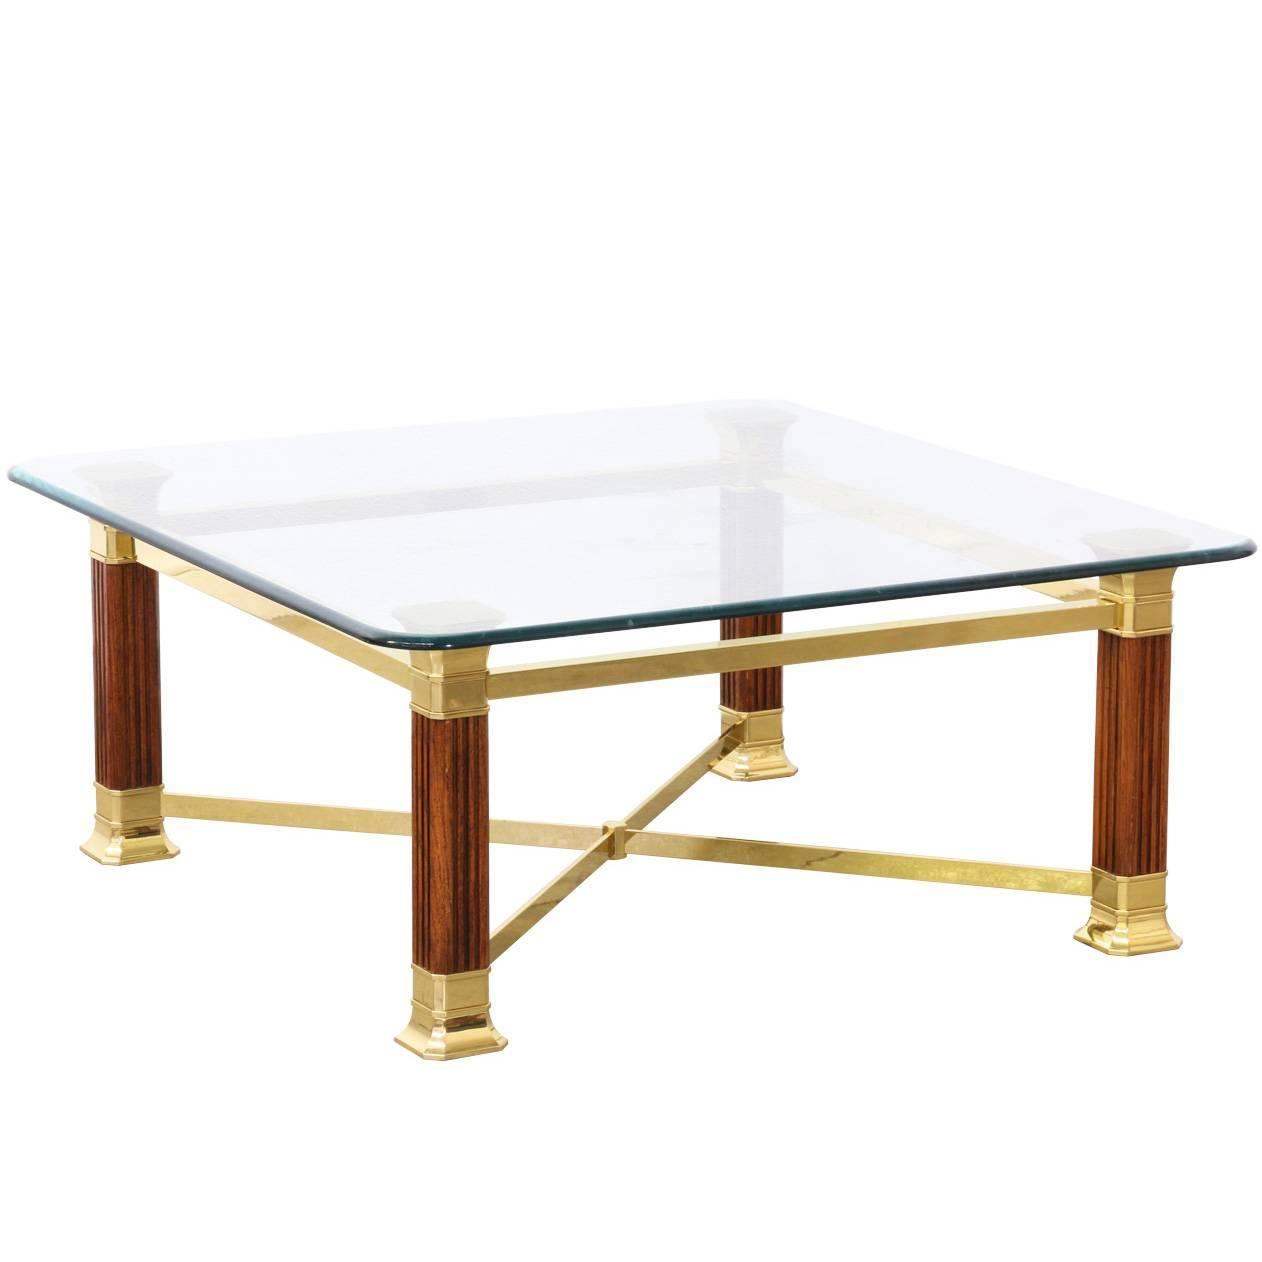 Italian Brass Column Style Base Coffee Table With Glass Top At 1stdibs